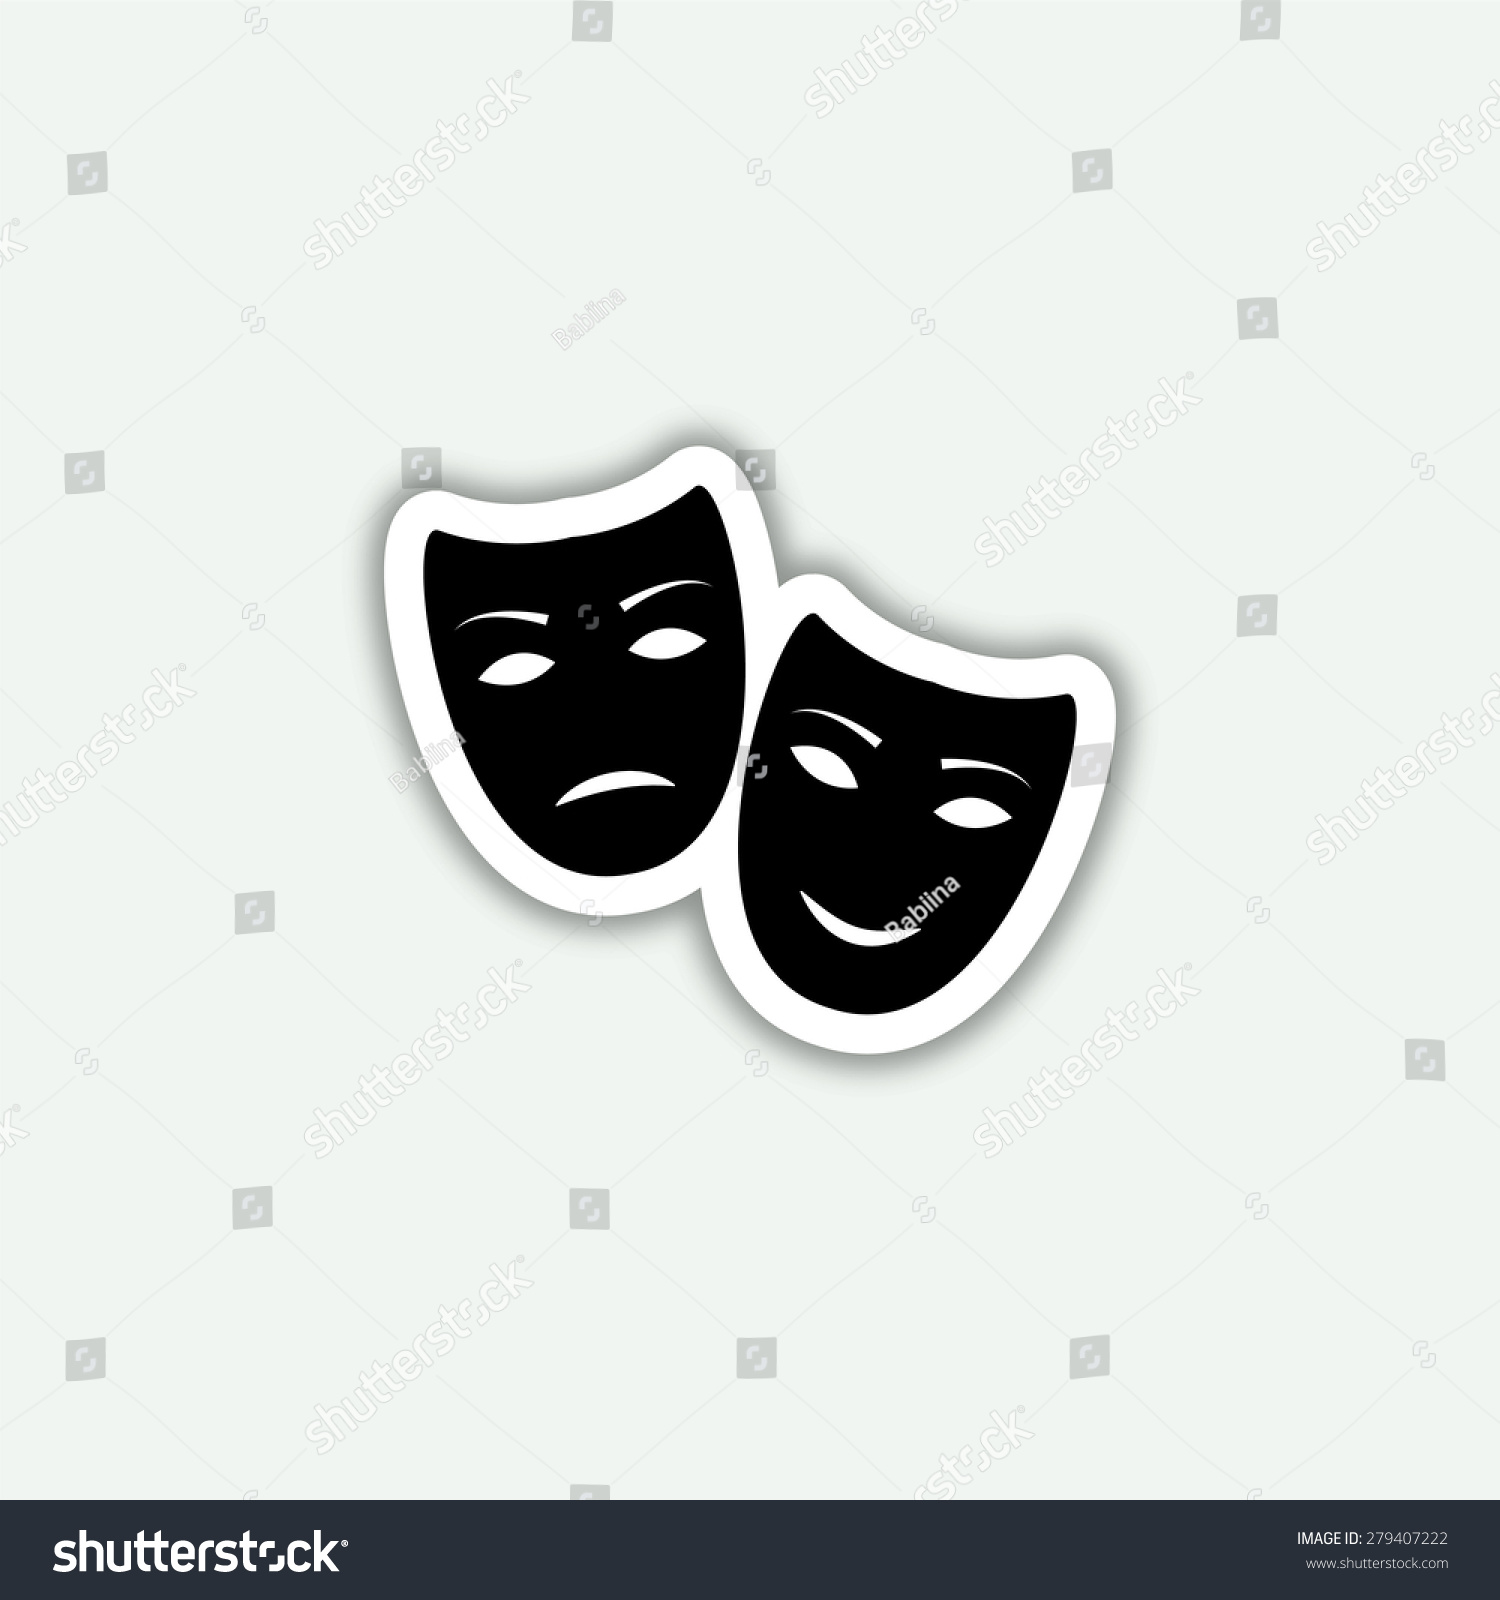 Tragedy and comedy masks icon vector sticker